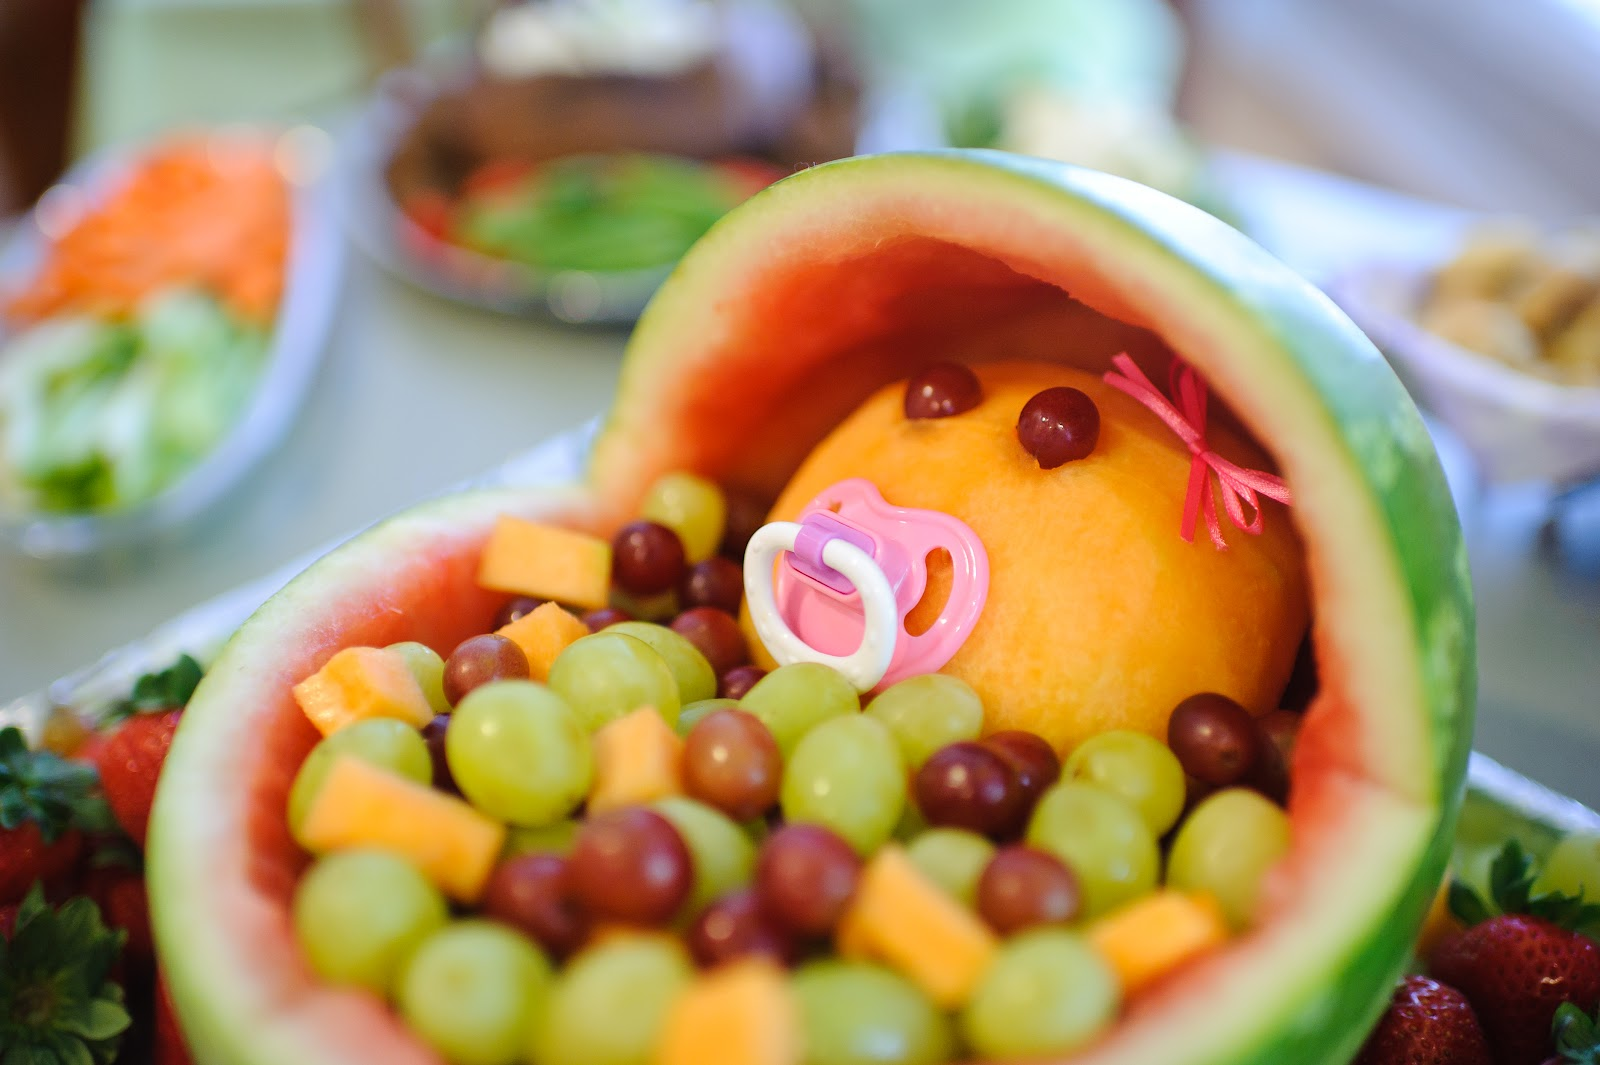 place fruit head in watermelon bassinet and surround with fruit